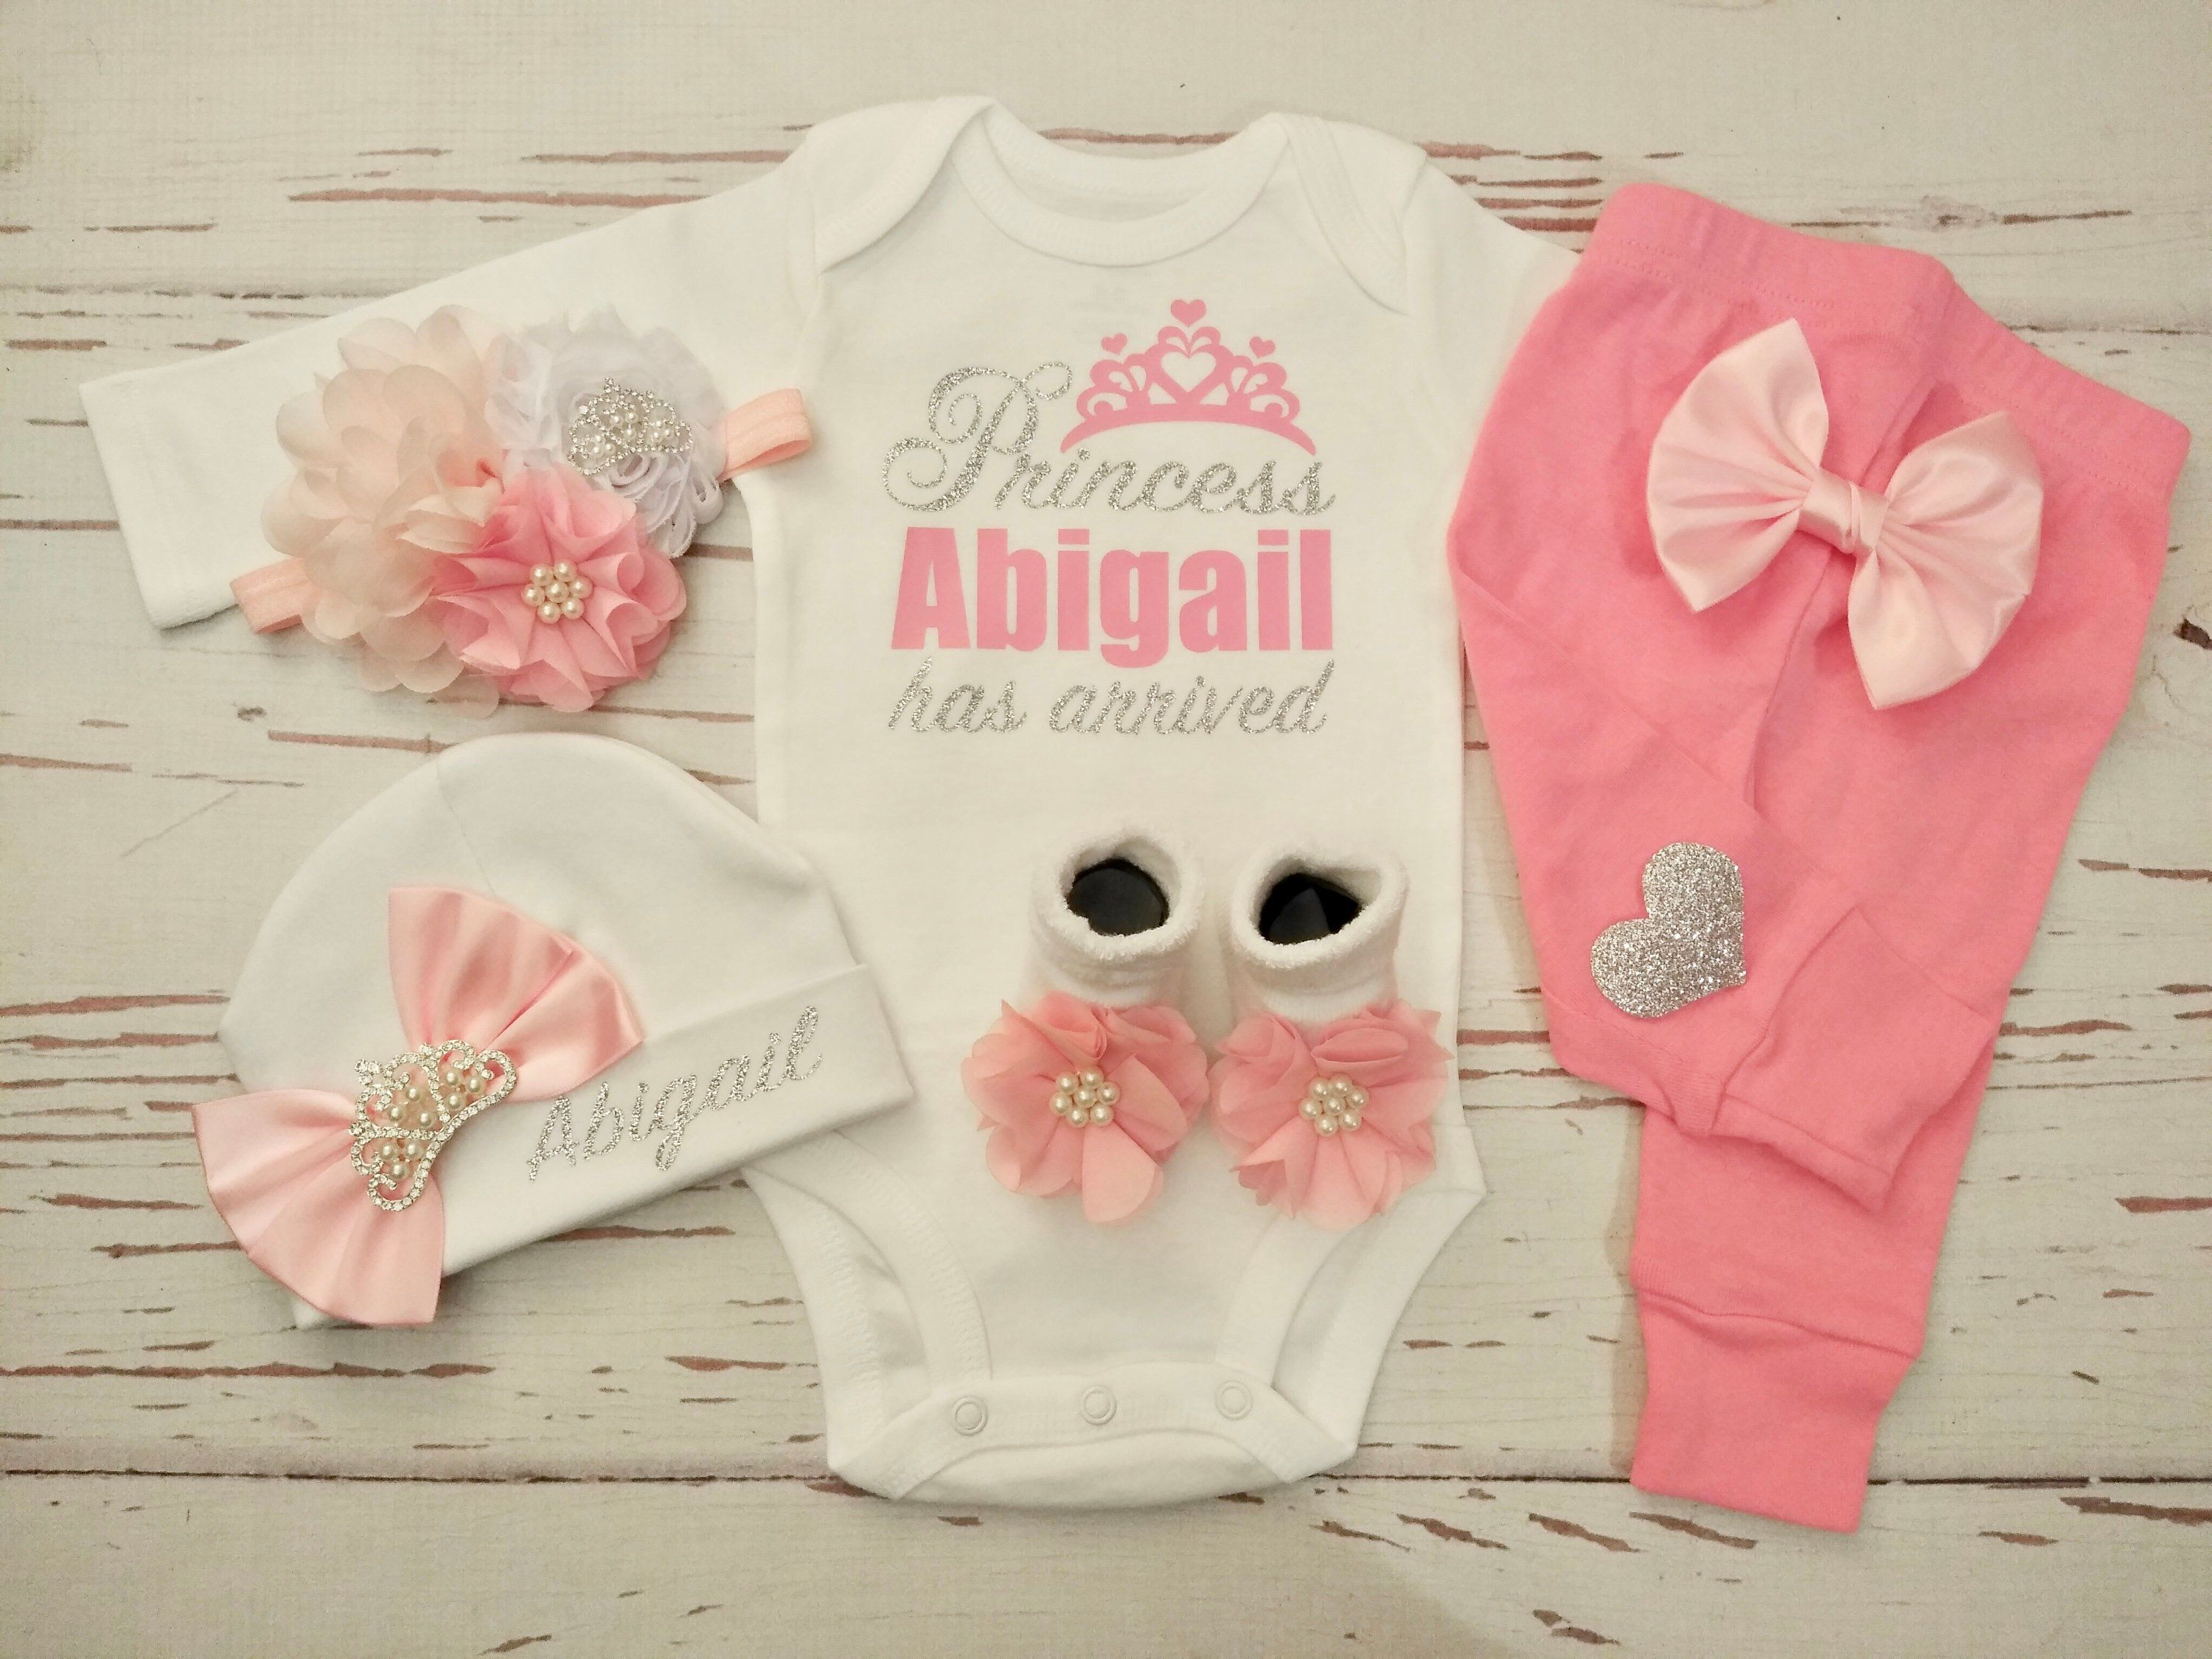 Baby Girl Clothes Newborn Girl Outfit Personalized Baby Girl Coming Home Outfit Floral Organic Floral Outfit Monogramed Outfit